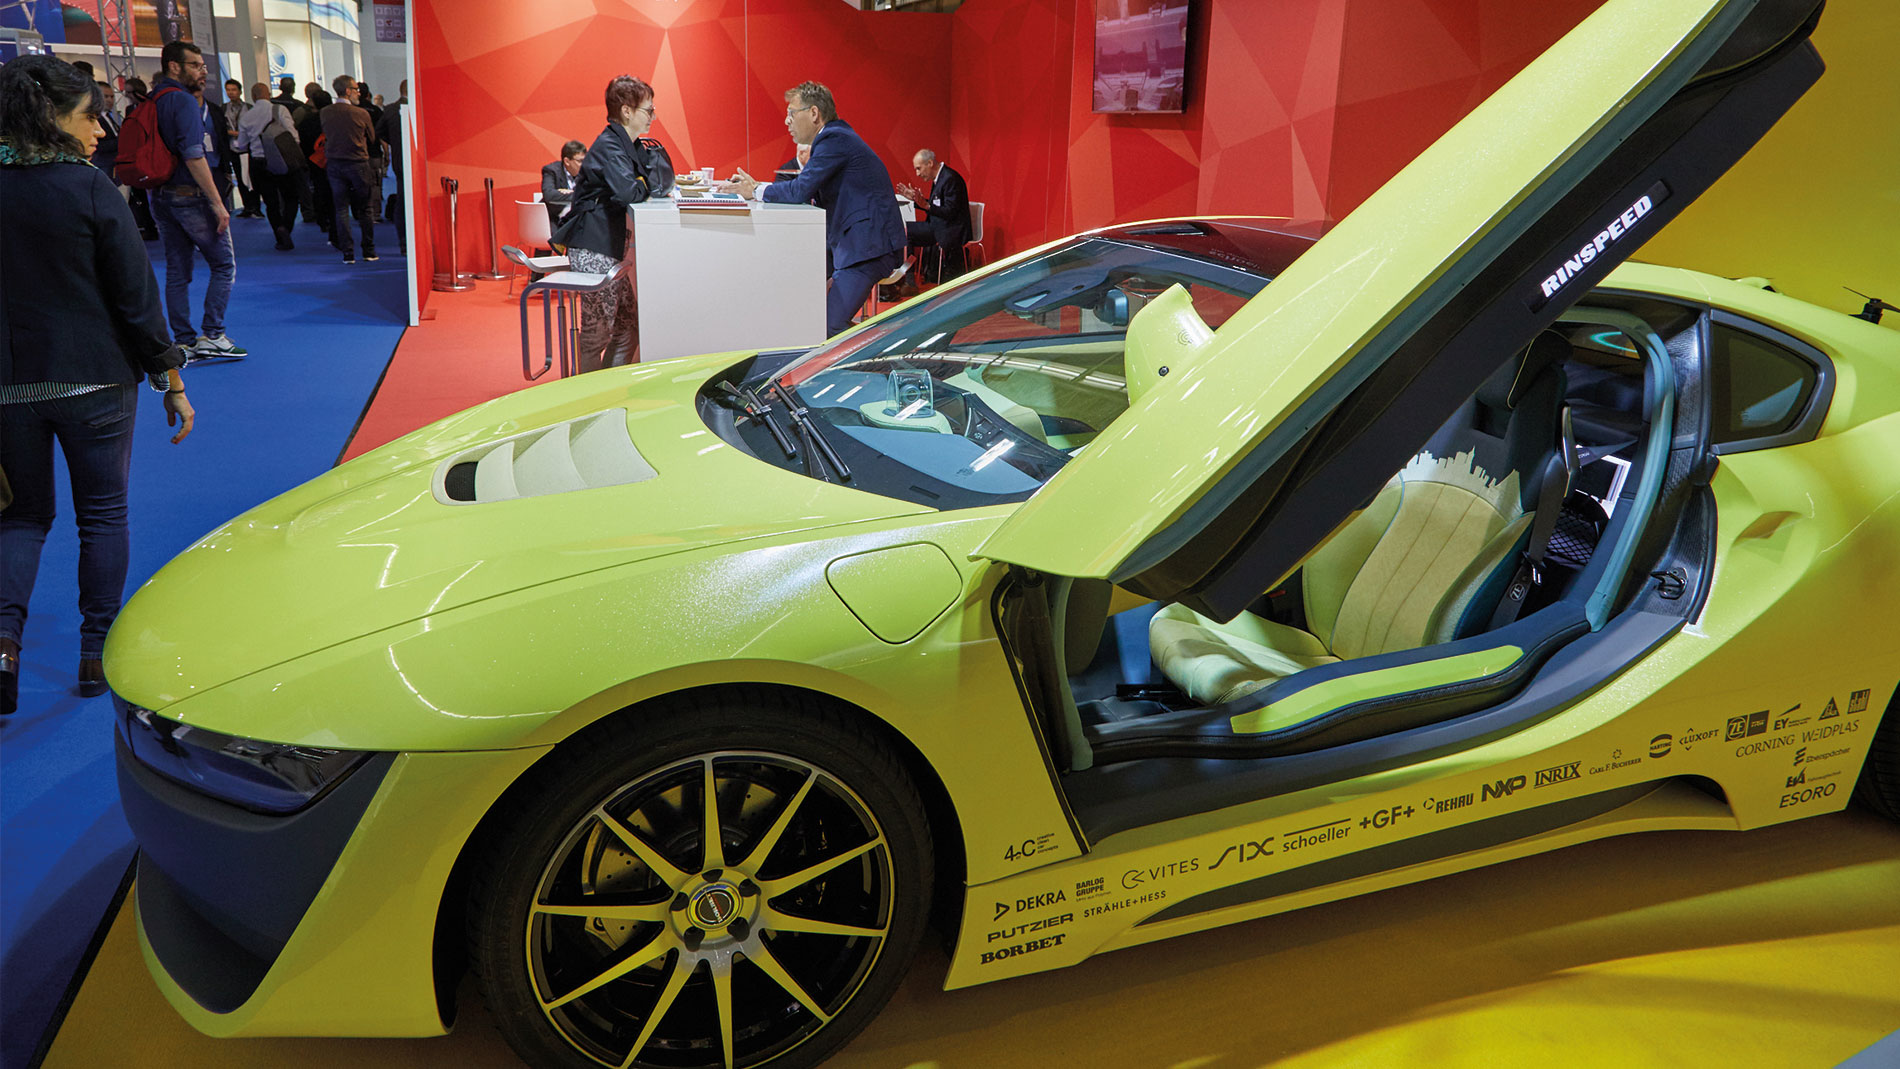 techtextil-productgroup-yellow-car-1900x1069